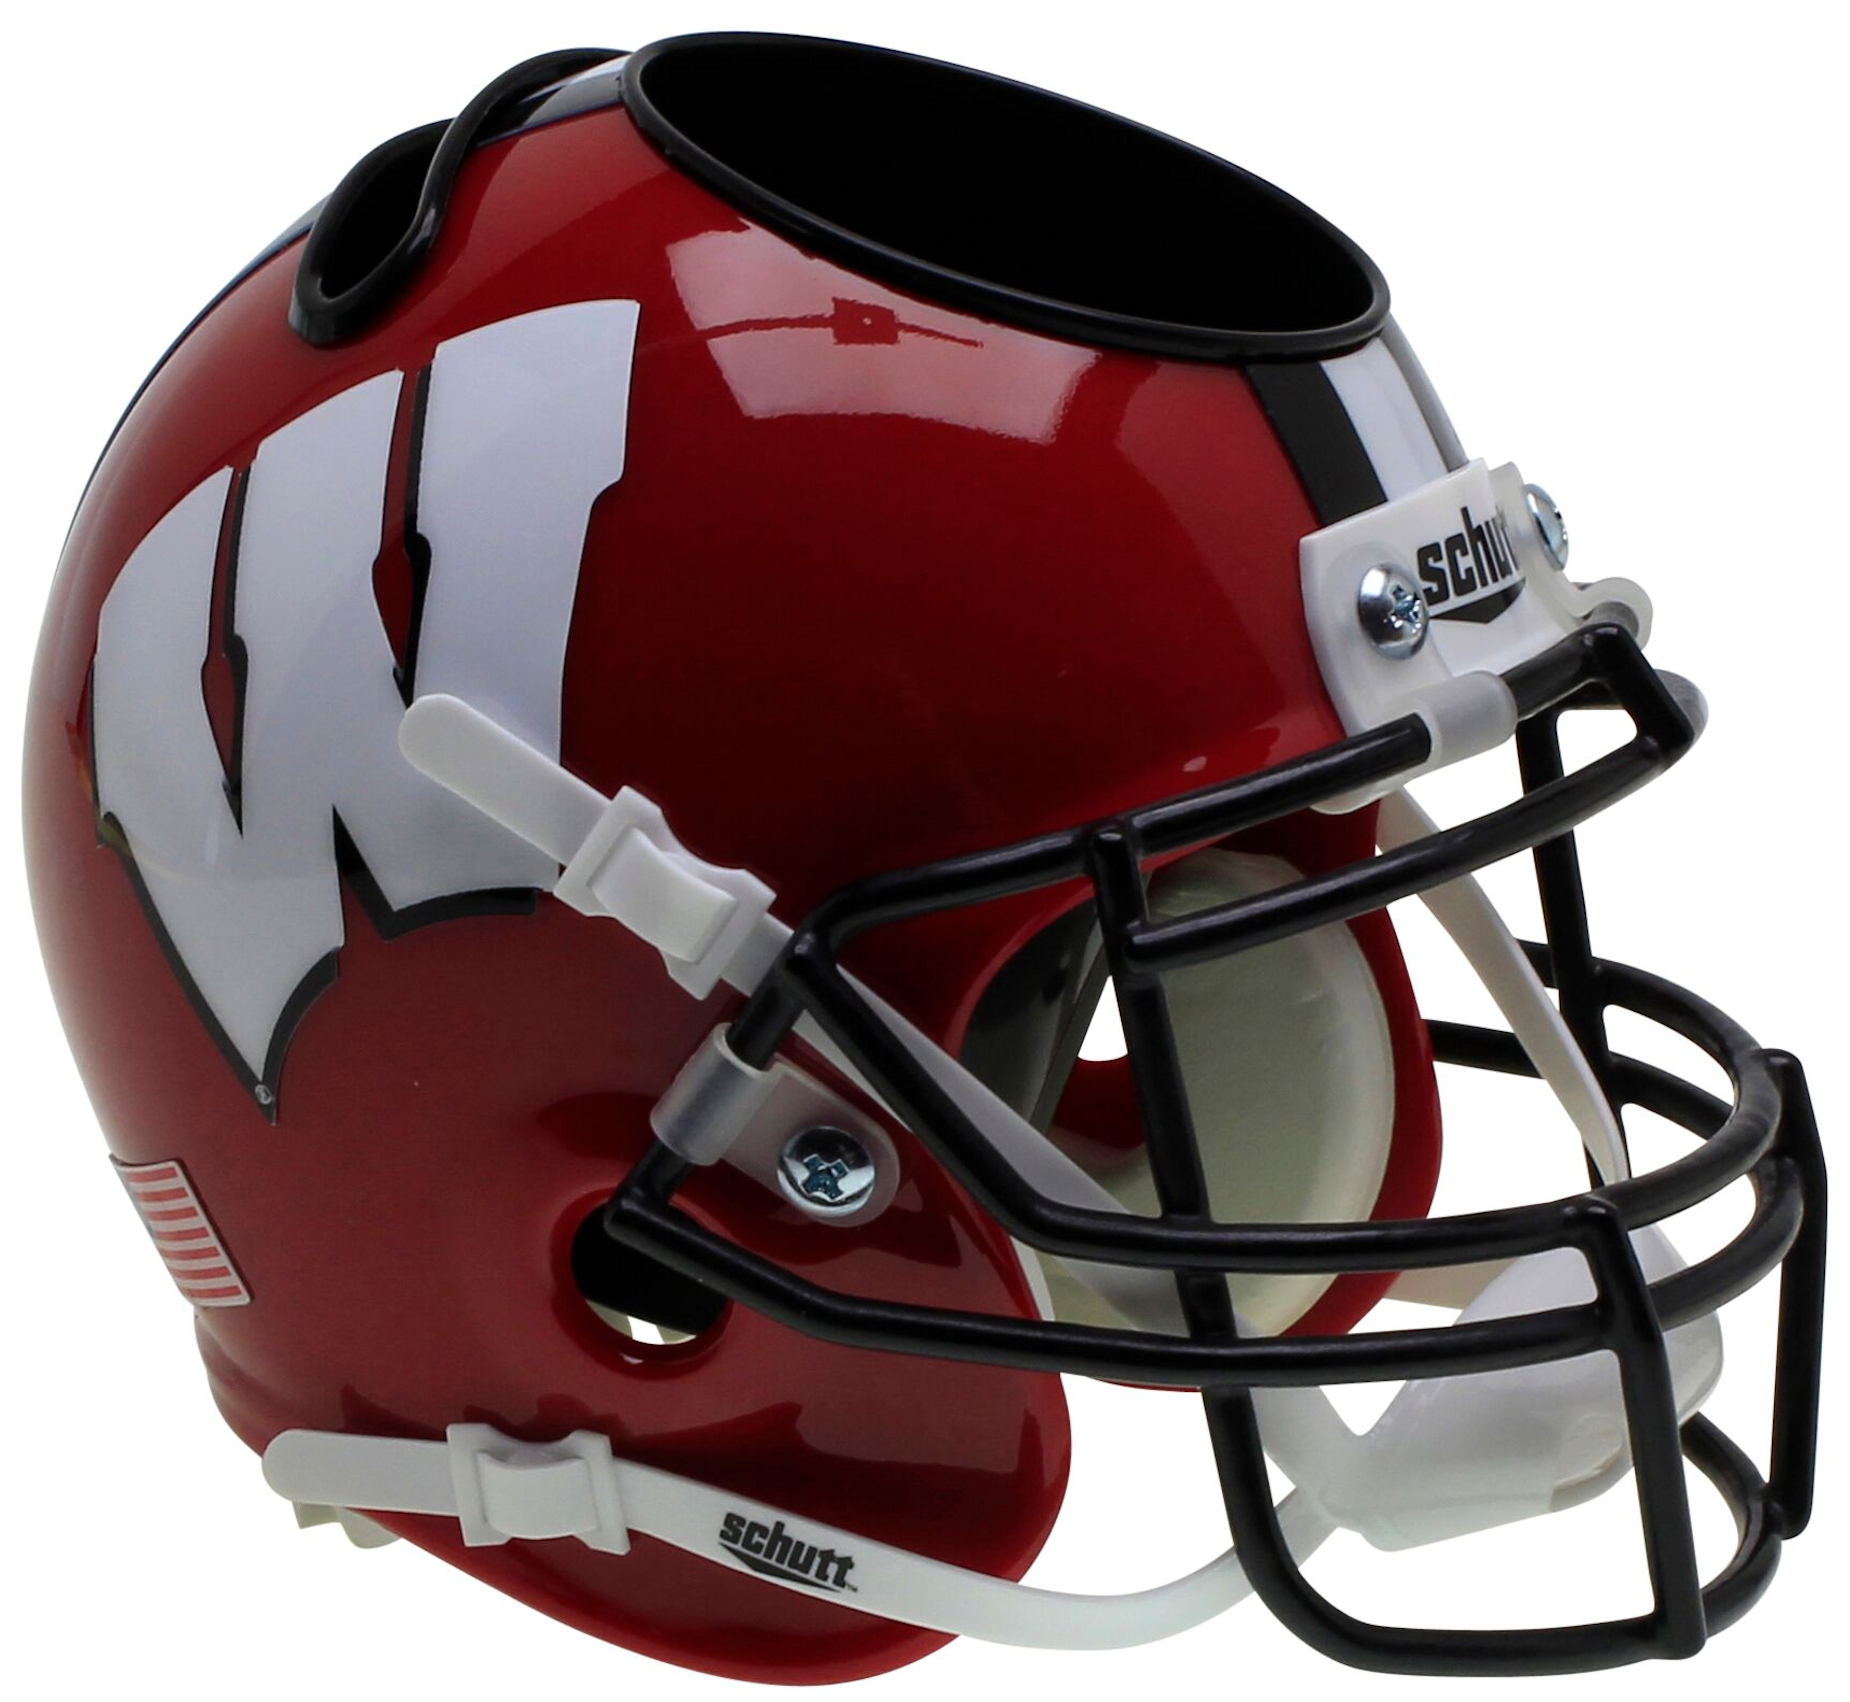 Wisconsin Badgers Miniature Football Helmet Desk Caddy <B>Red Black Mask</B>